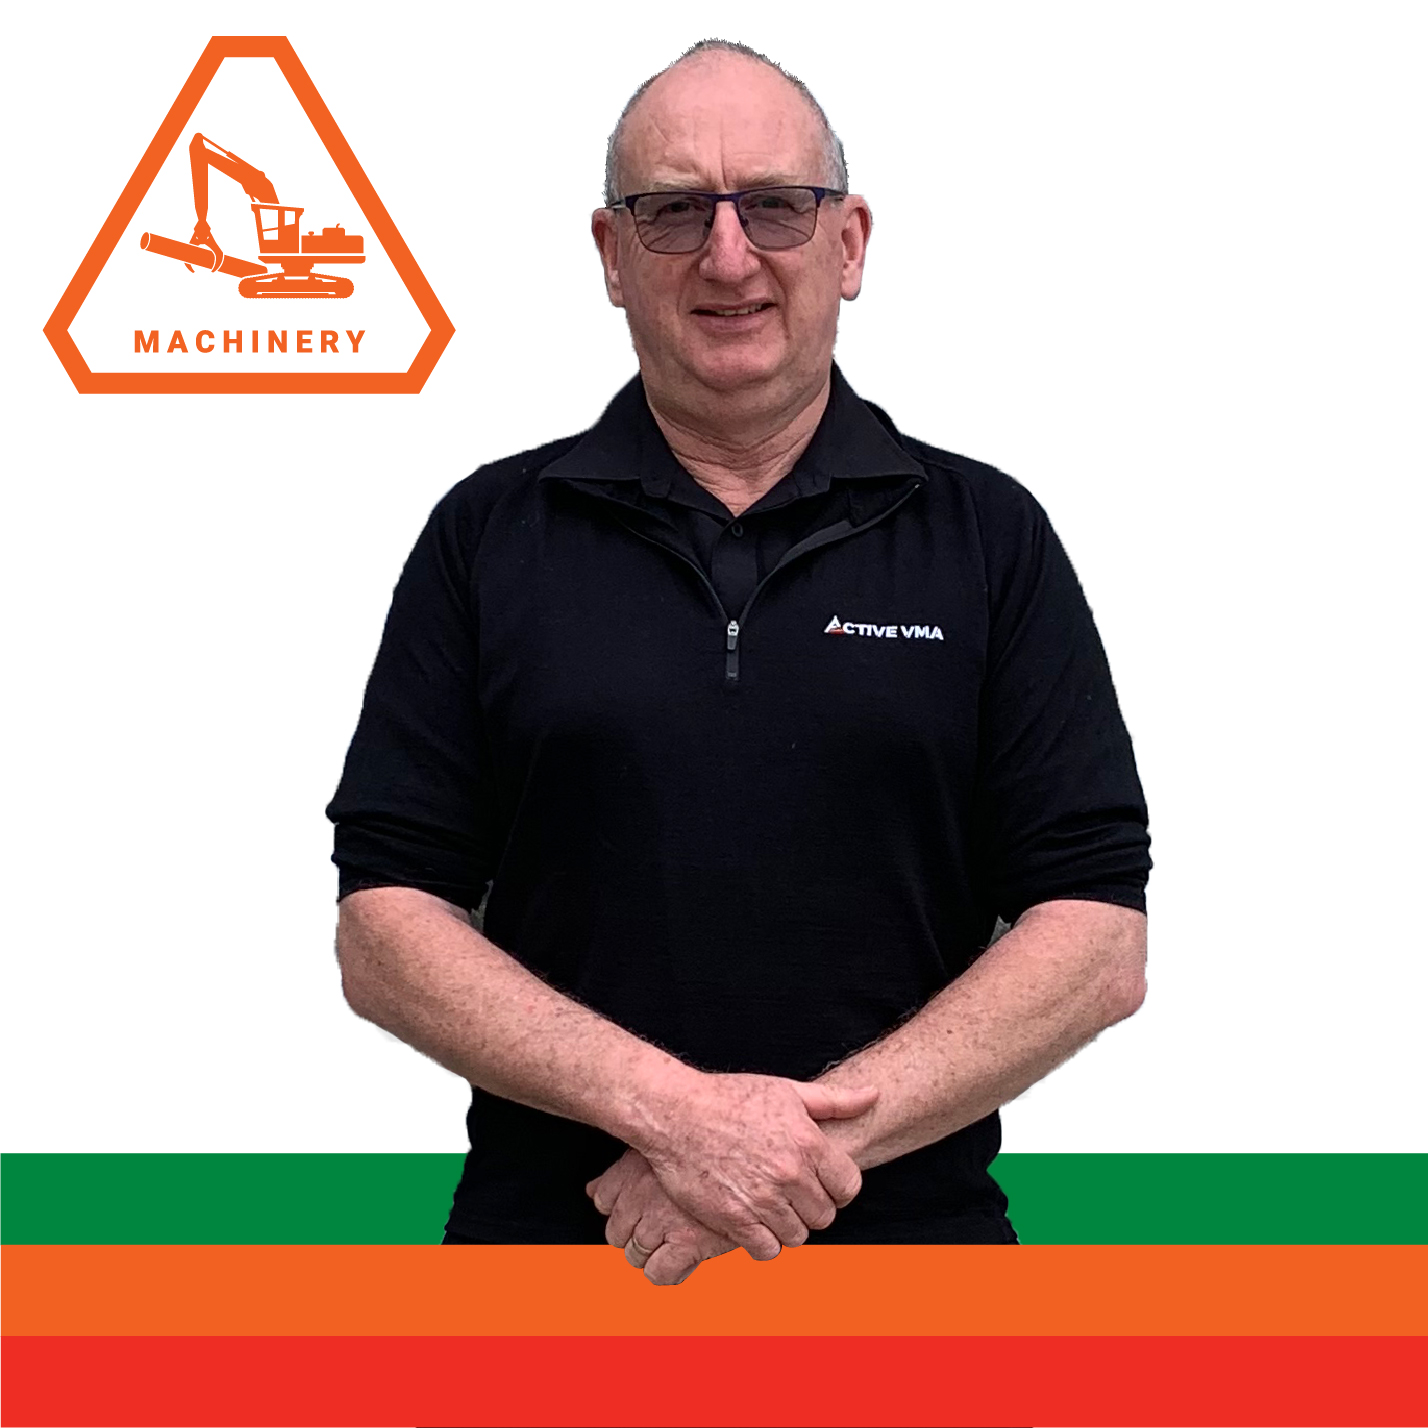 Michael Lepper | Machinery Engineering Product Manager | Active VMA